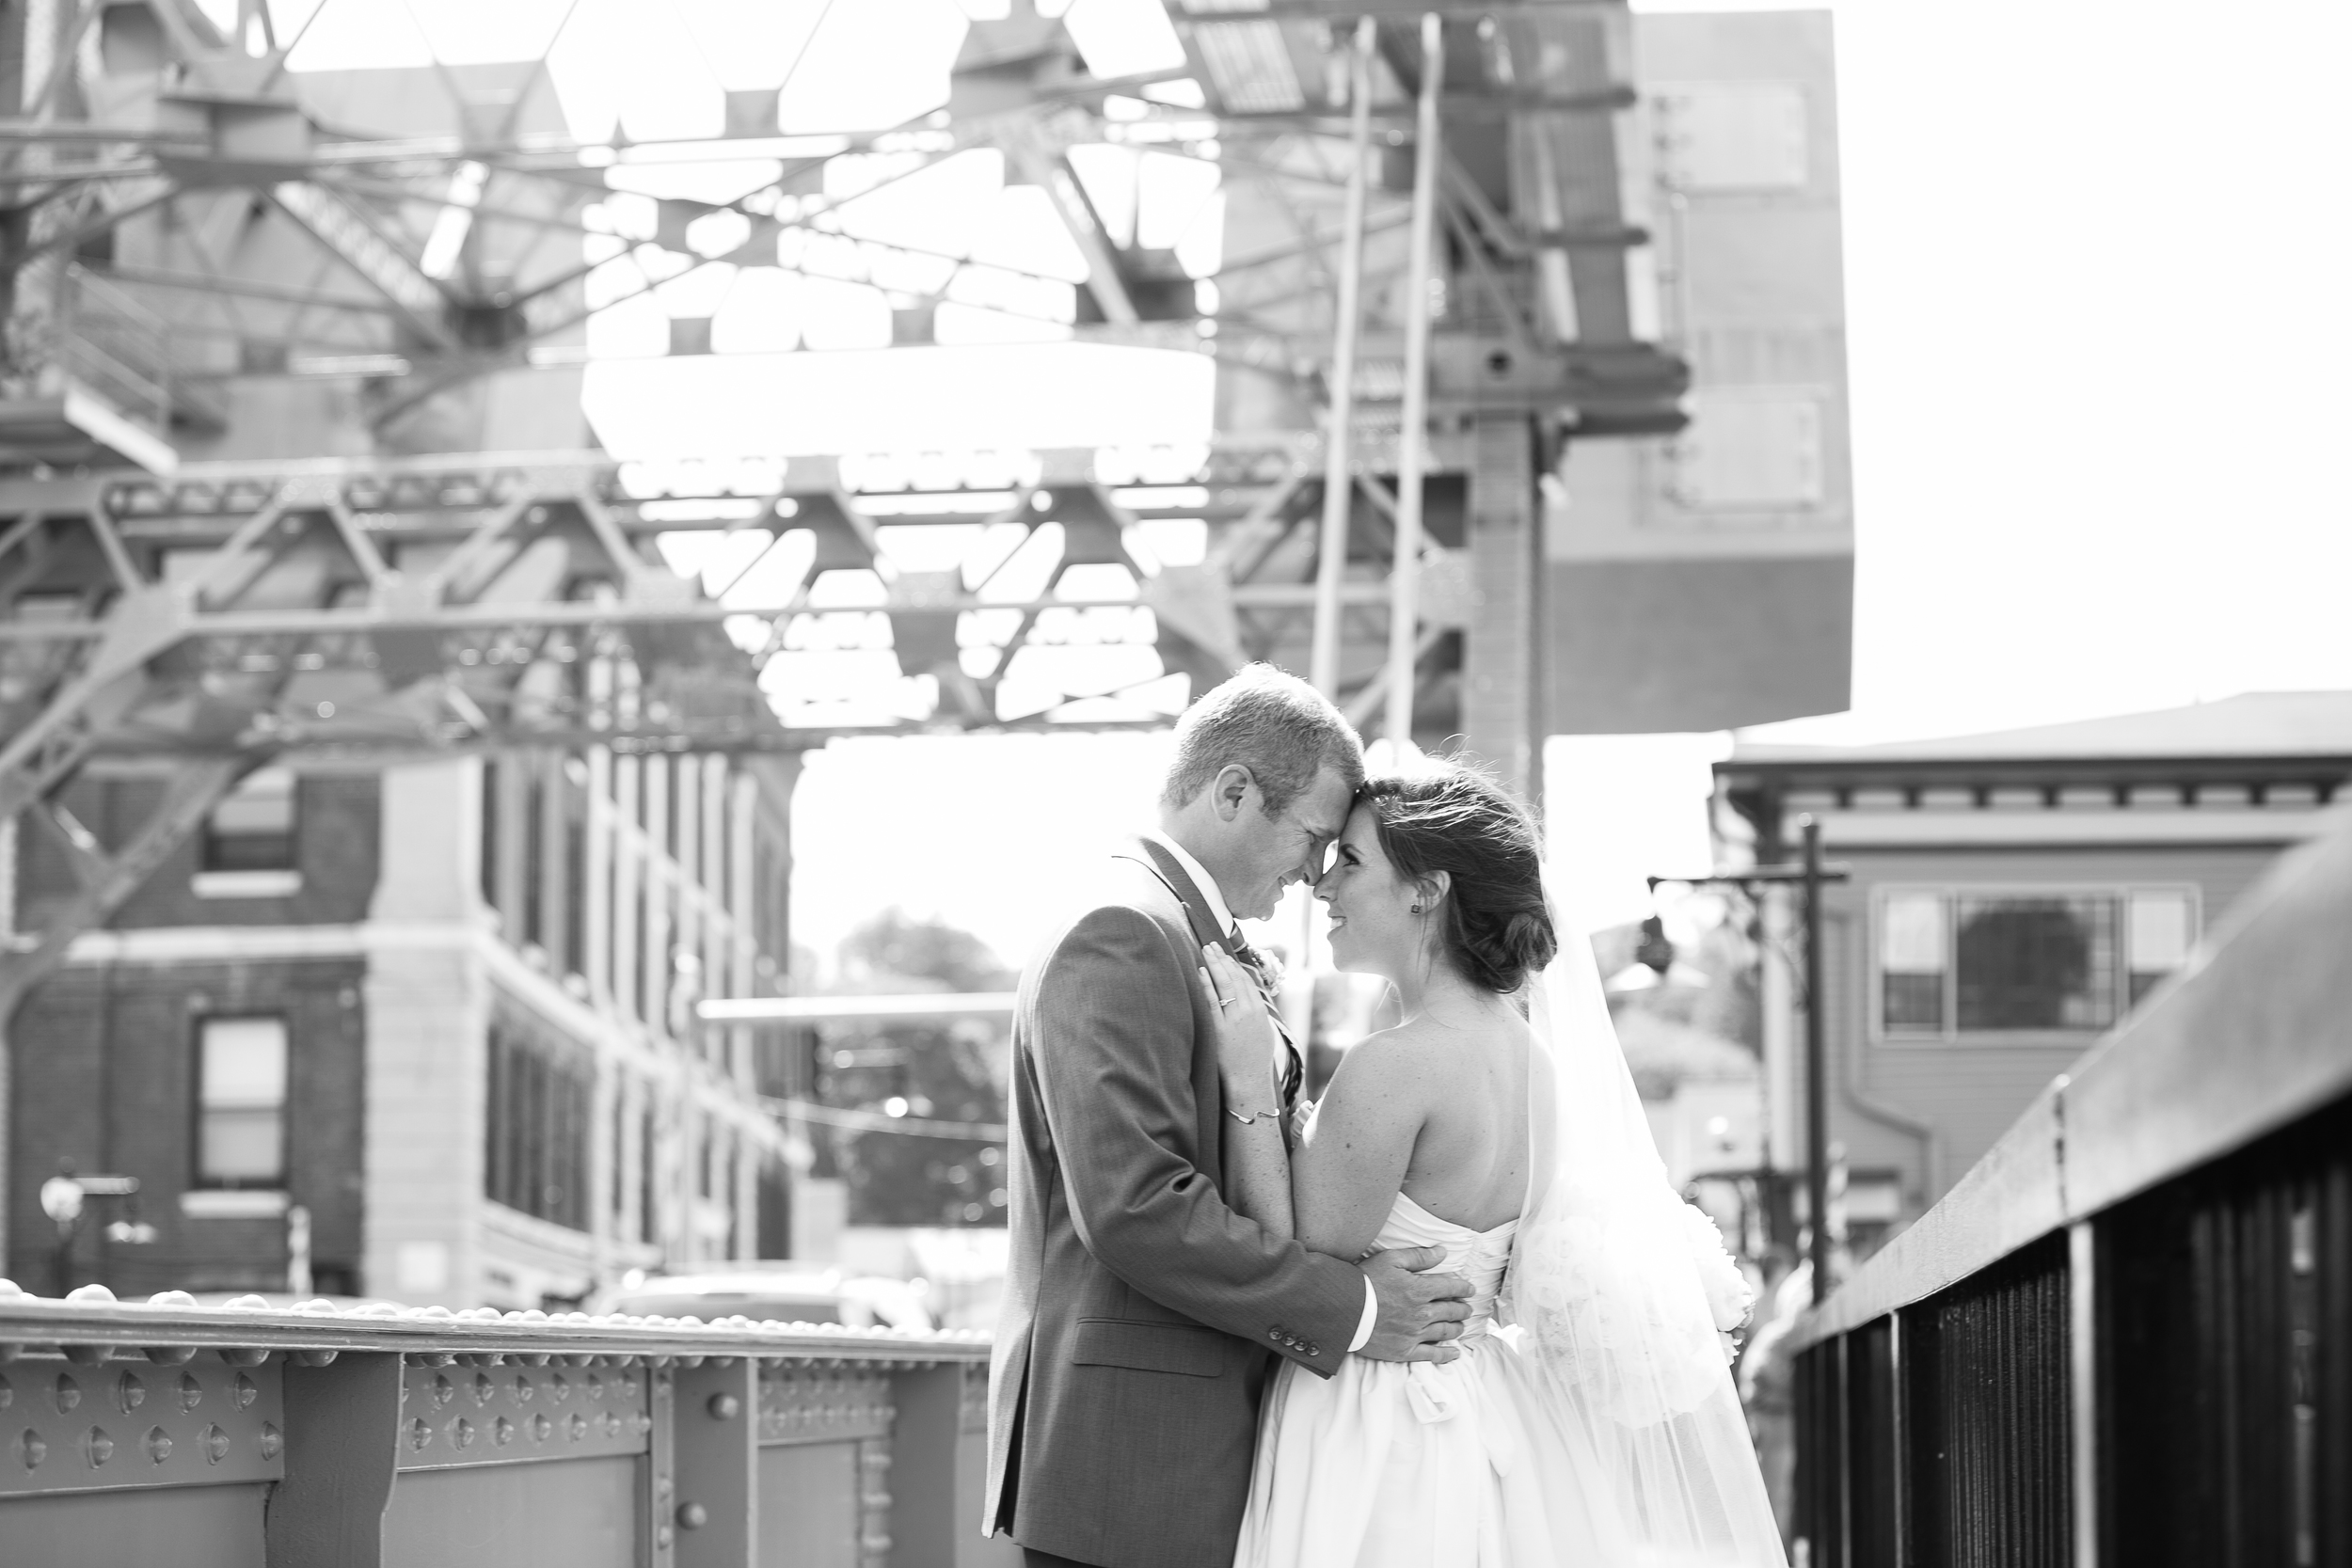 Obsessed with this picture. Gorgeous Bride and Groom with my love for bridges and architecture? Yes, please.